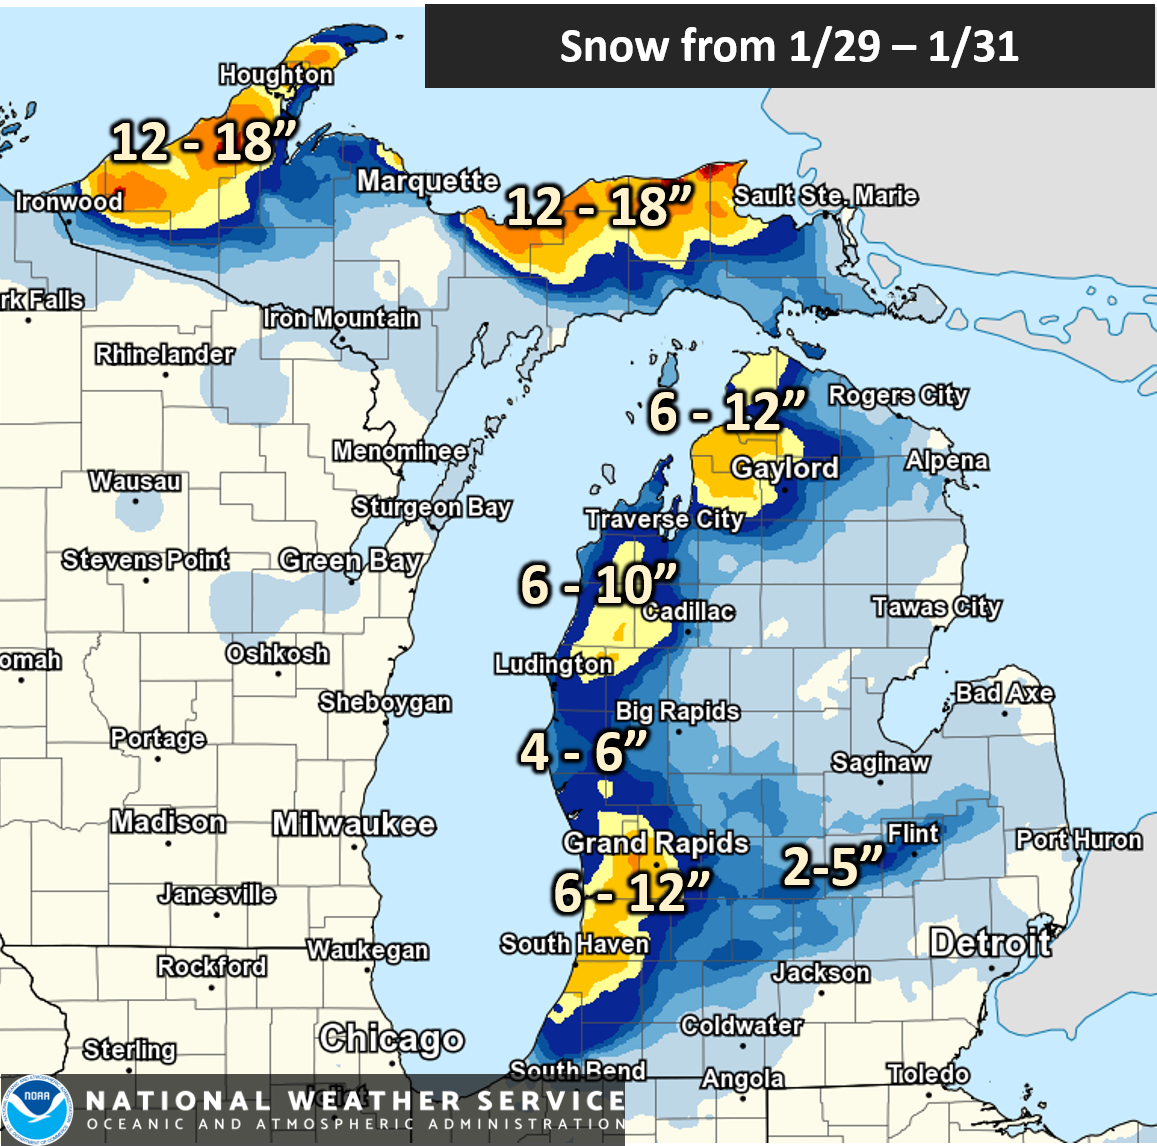 January 28 - 31, 2019: Days of Snow, Low Visibility, and